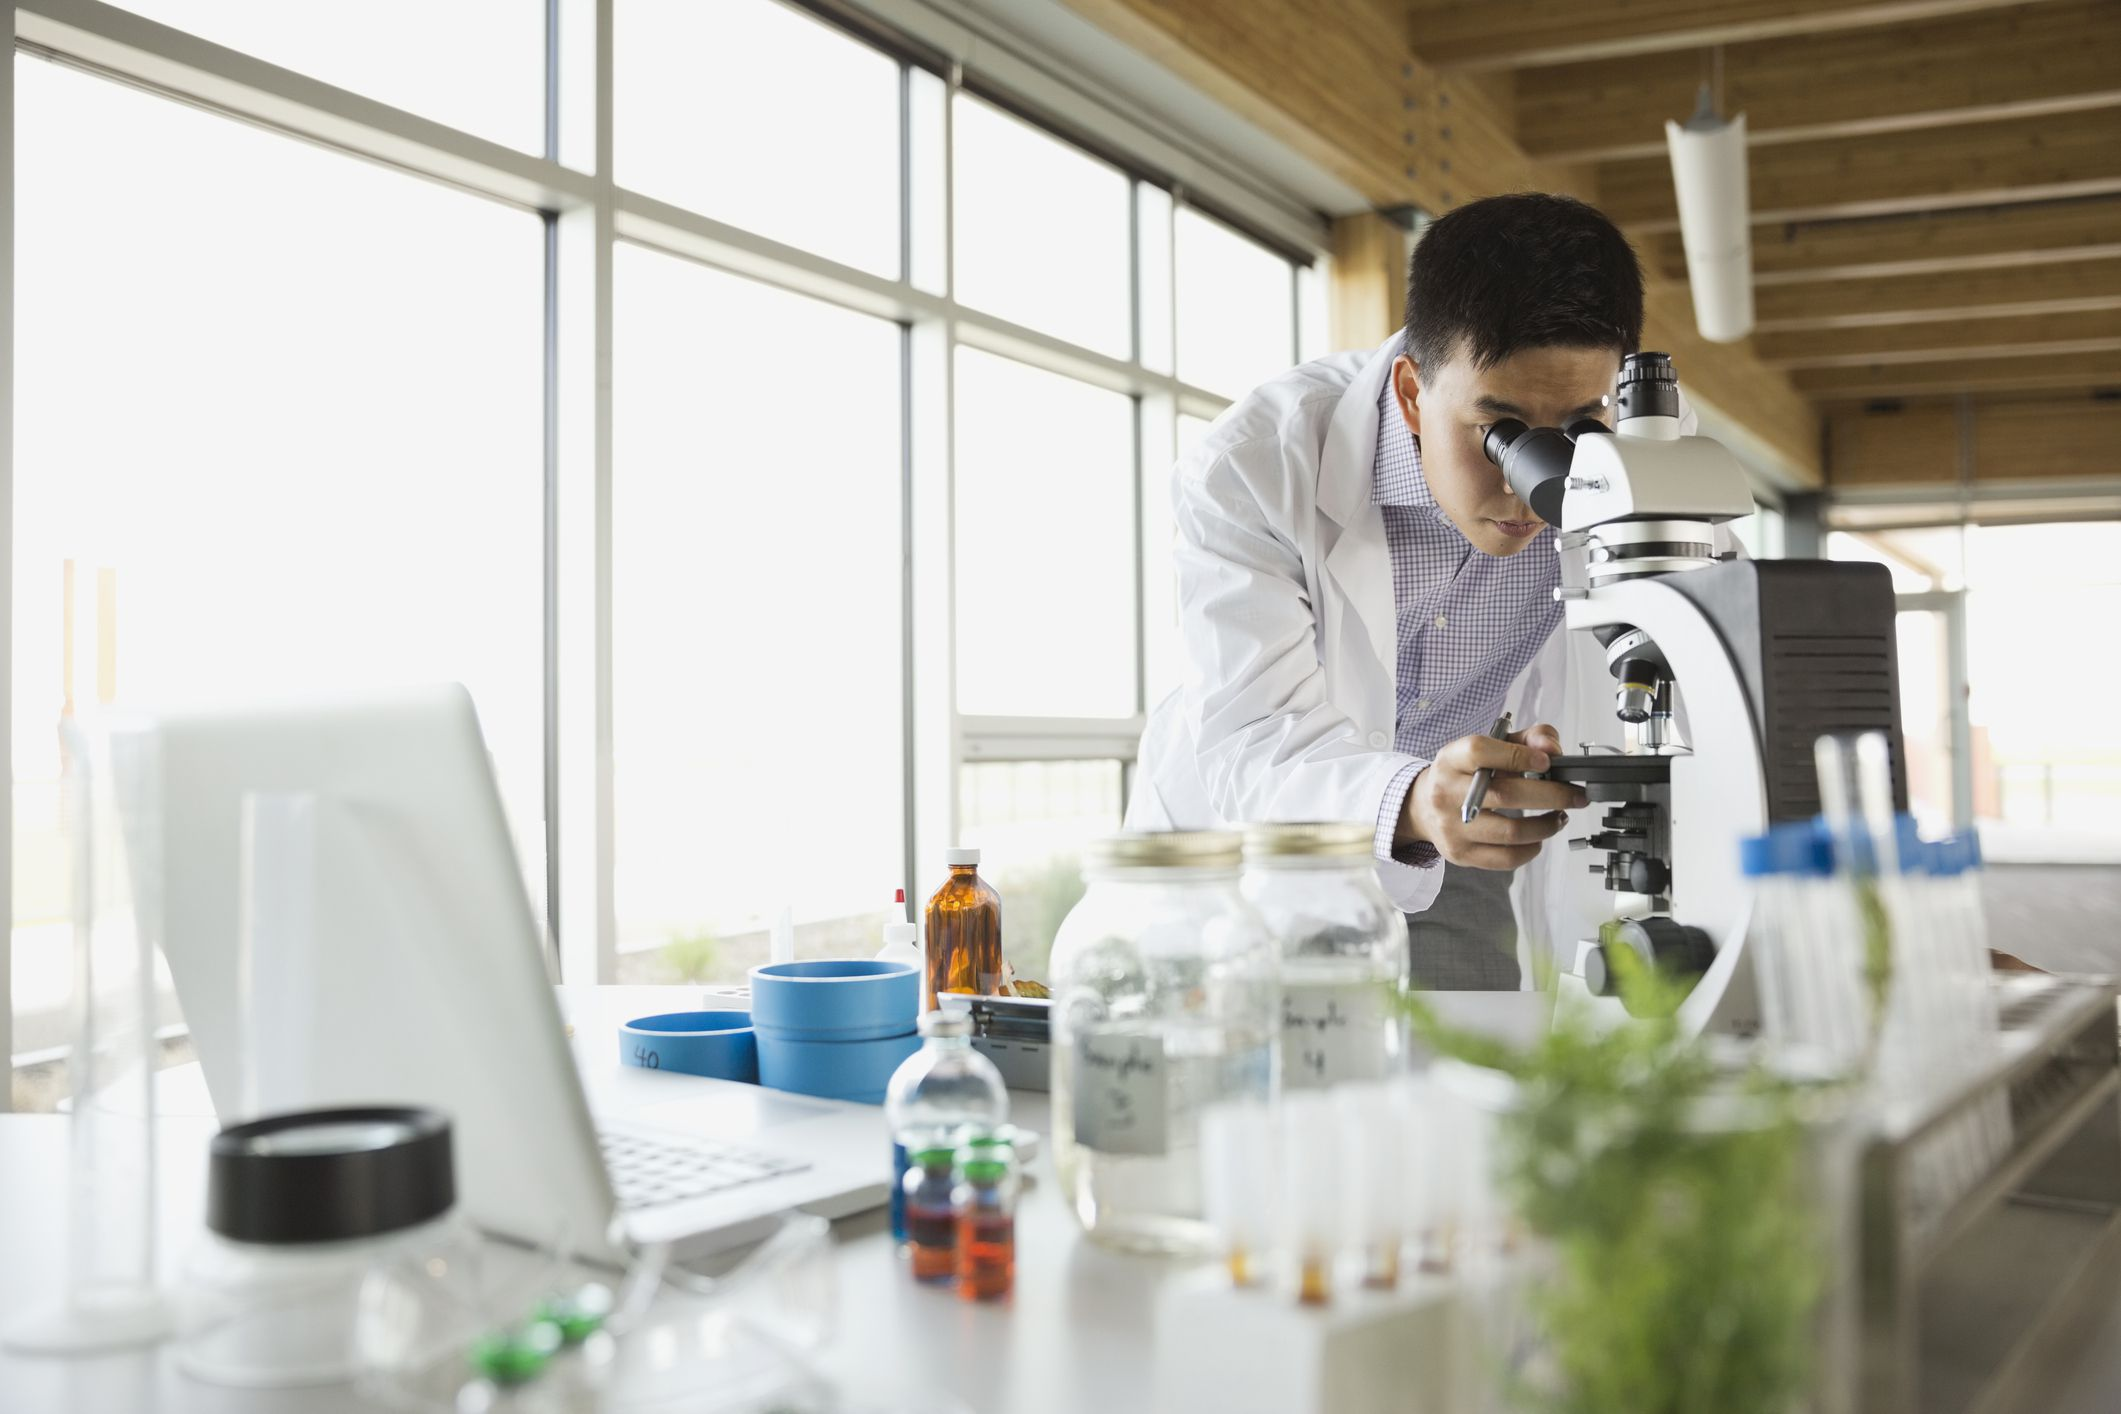 Ranking the Top Biotech Countries